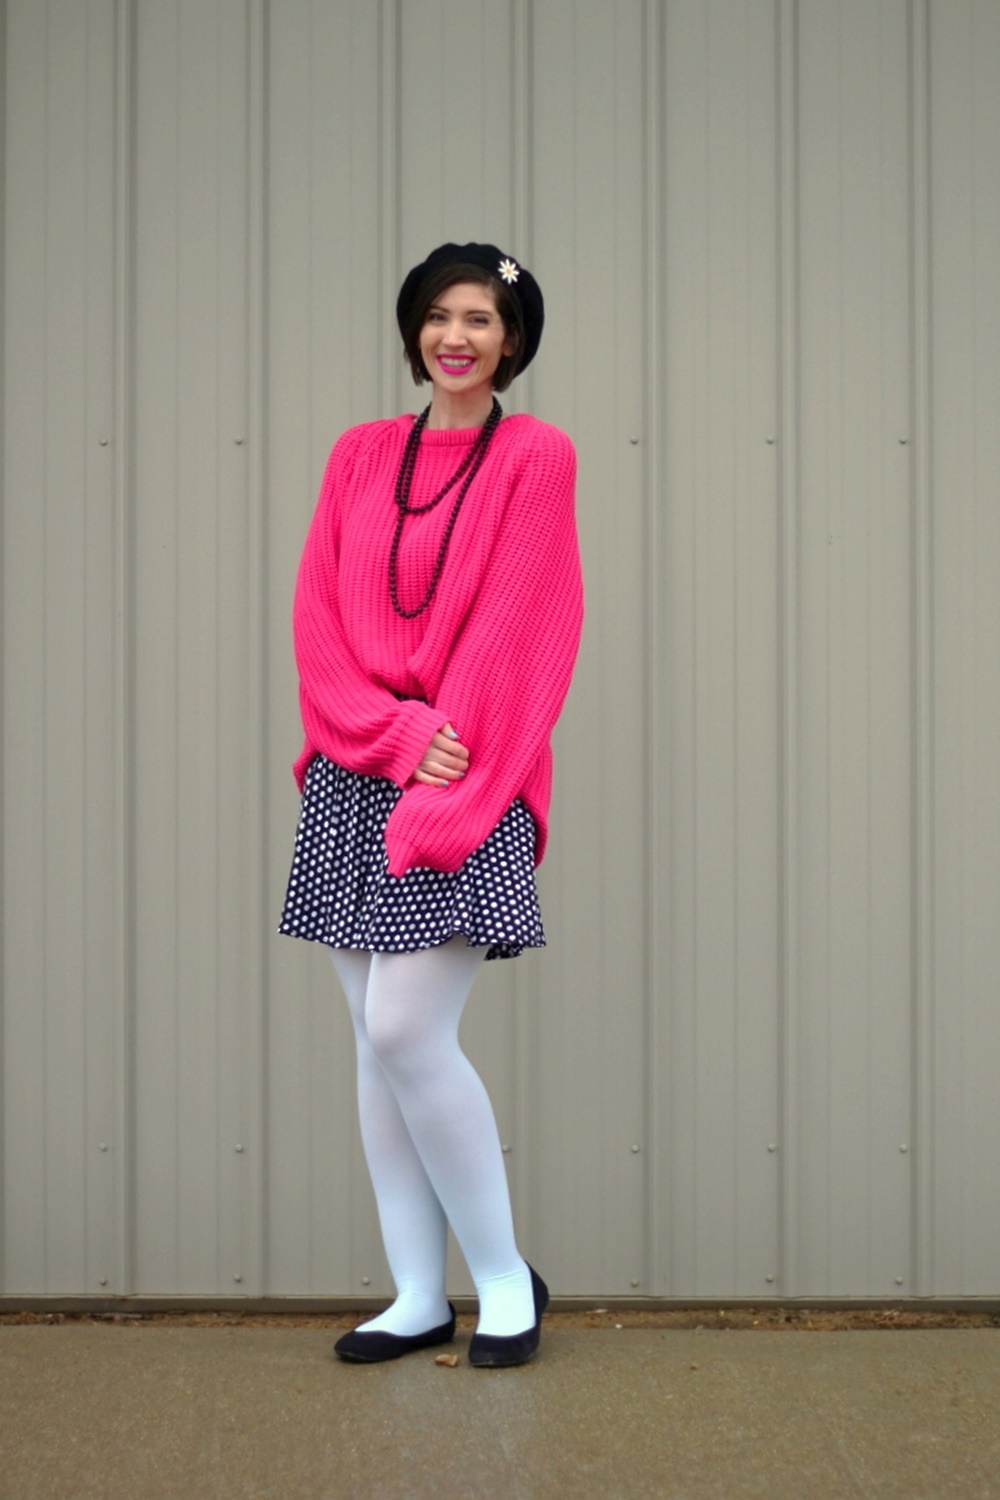 Oversized pink sweater, vintage beaded necklace, black beret, daisy pin, polka dot skirt, mint blue tights, black flats